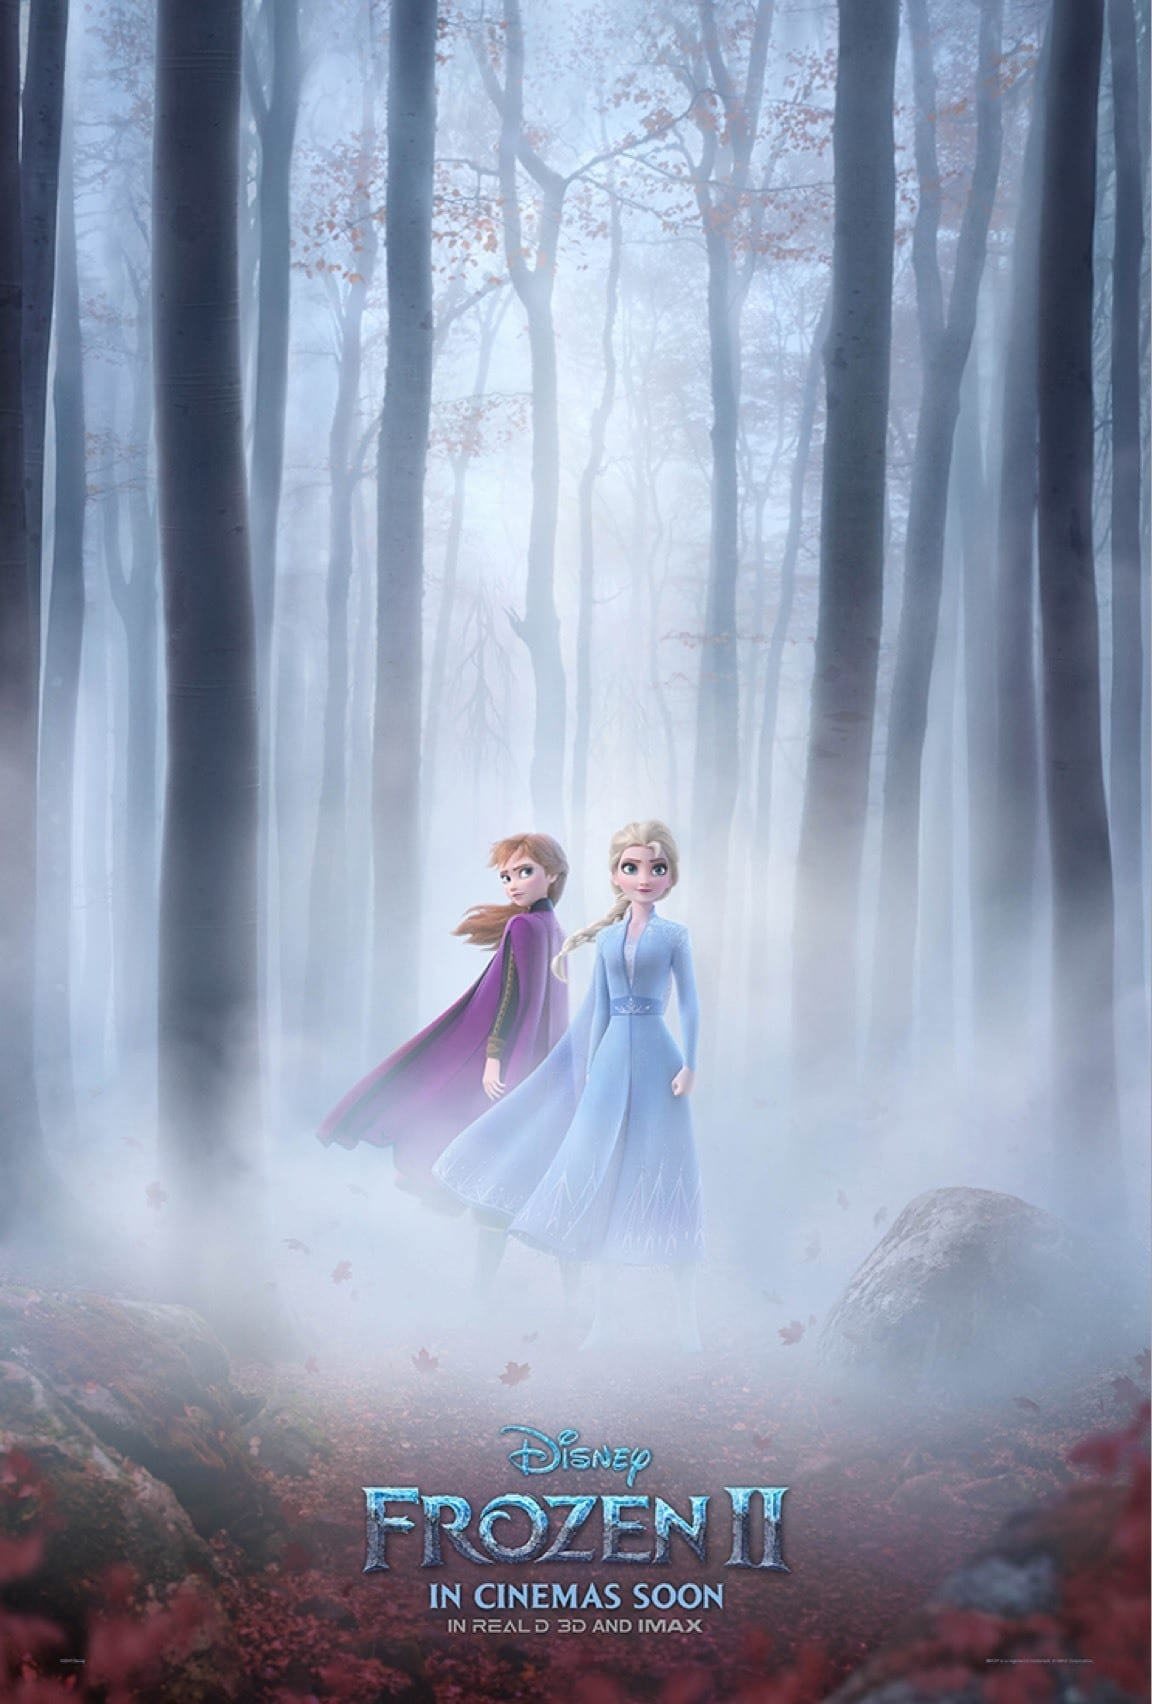 Elsa and Anna standing in a forest surounded by mist